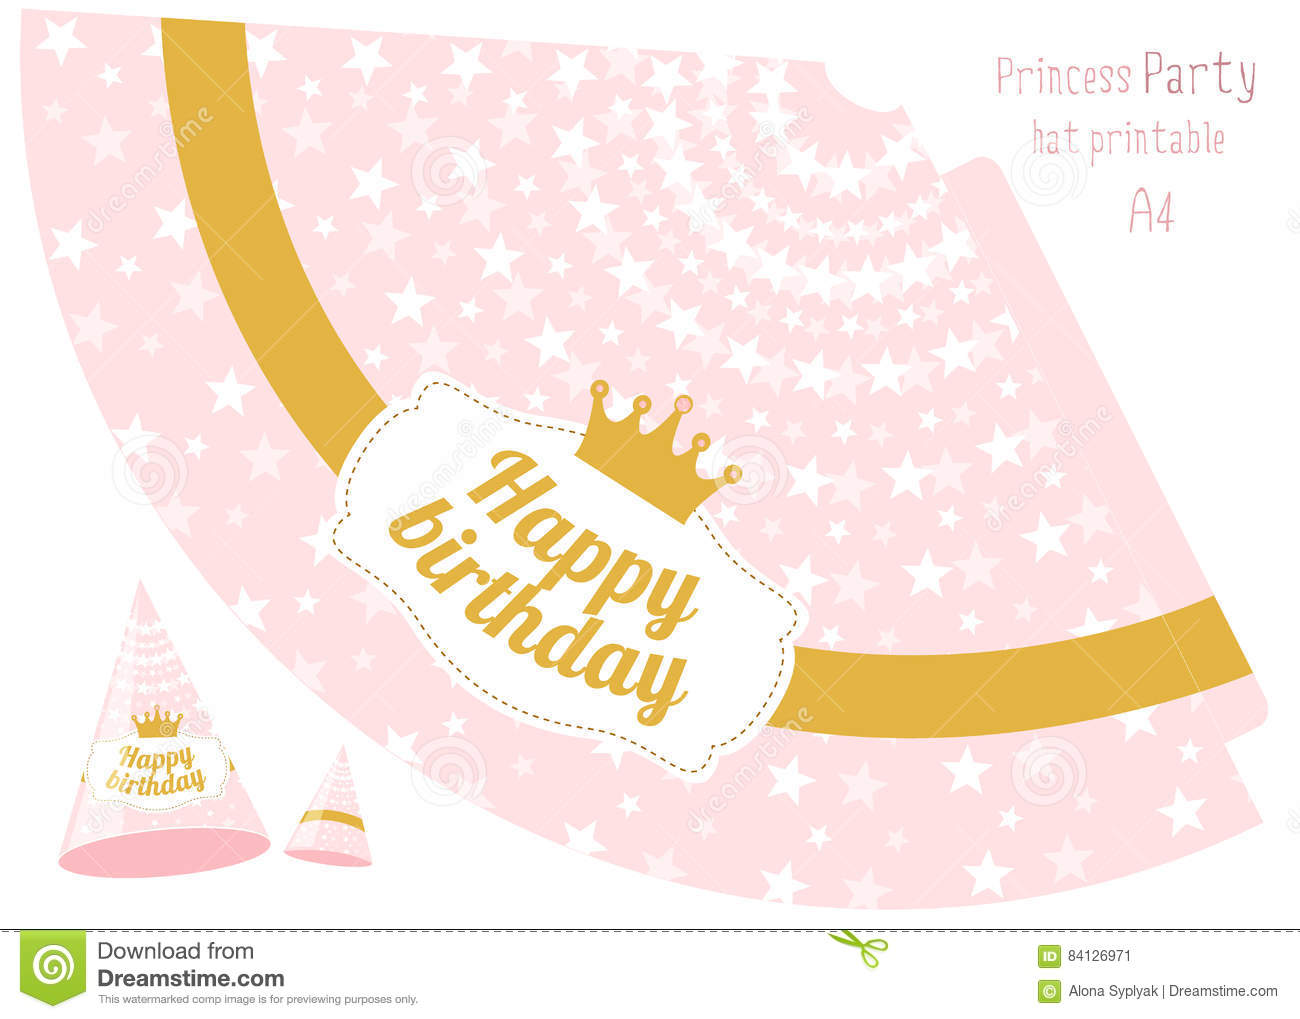 Party Hats V Printable Pink And Gold Princess Party Vector – Party Hat Template